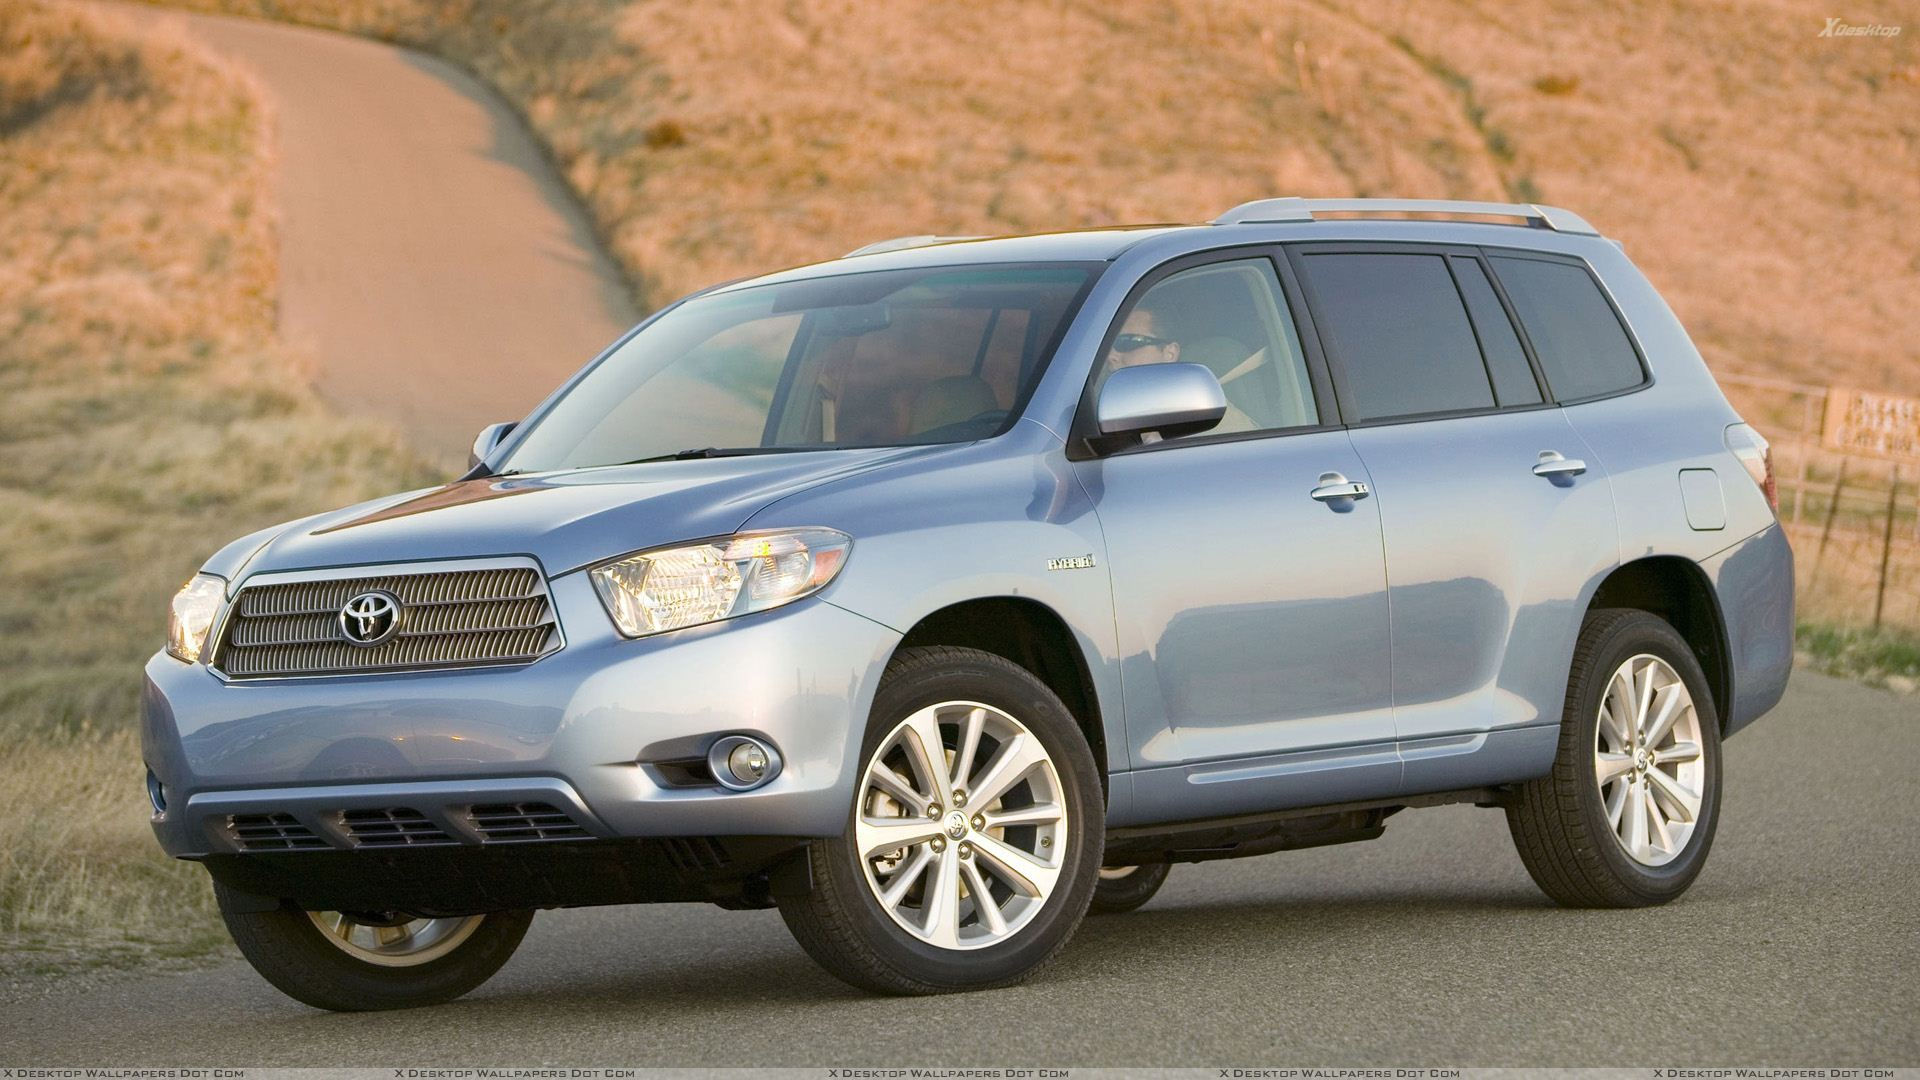 2009 toyota highlander hybrid in blue on road wallpaper. Black Bedroom Furniture Sets. Home Design Ideas